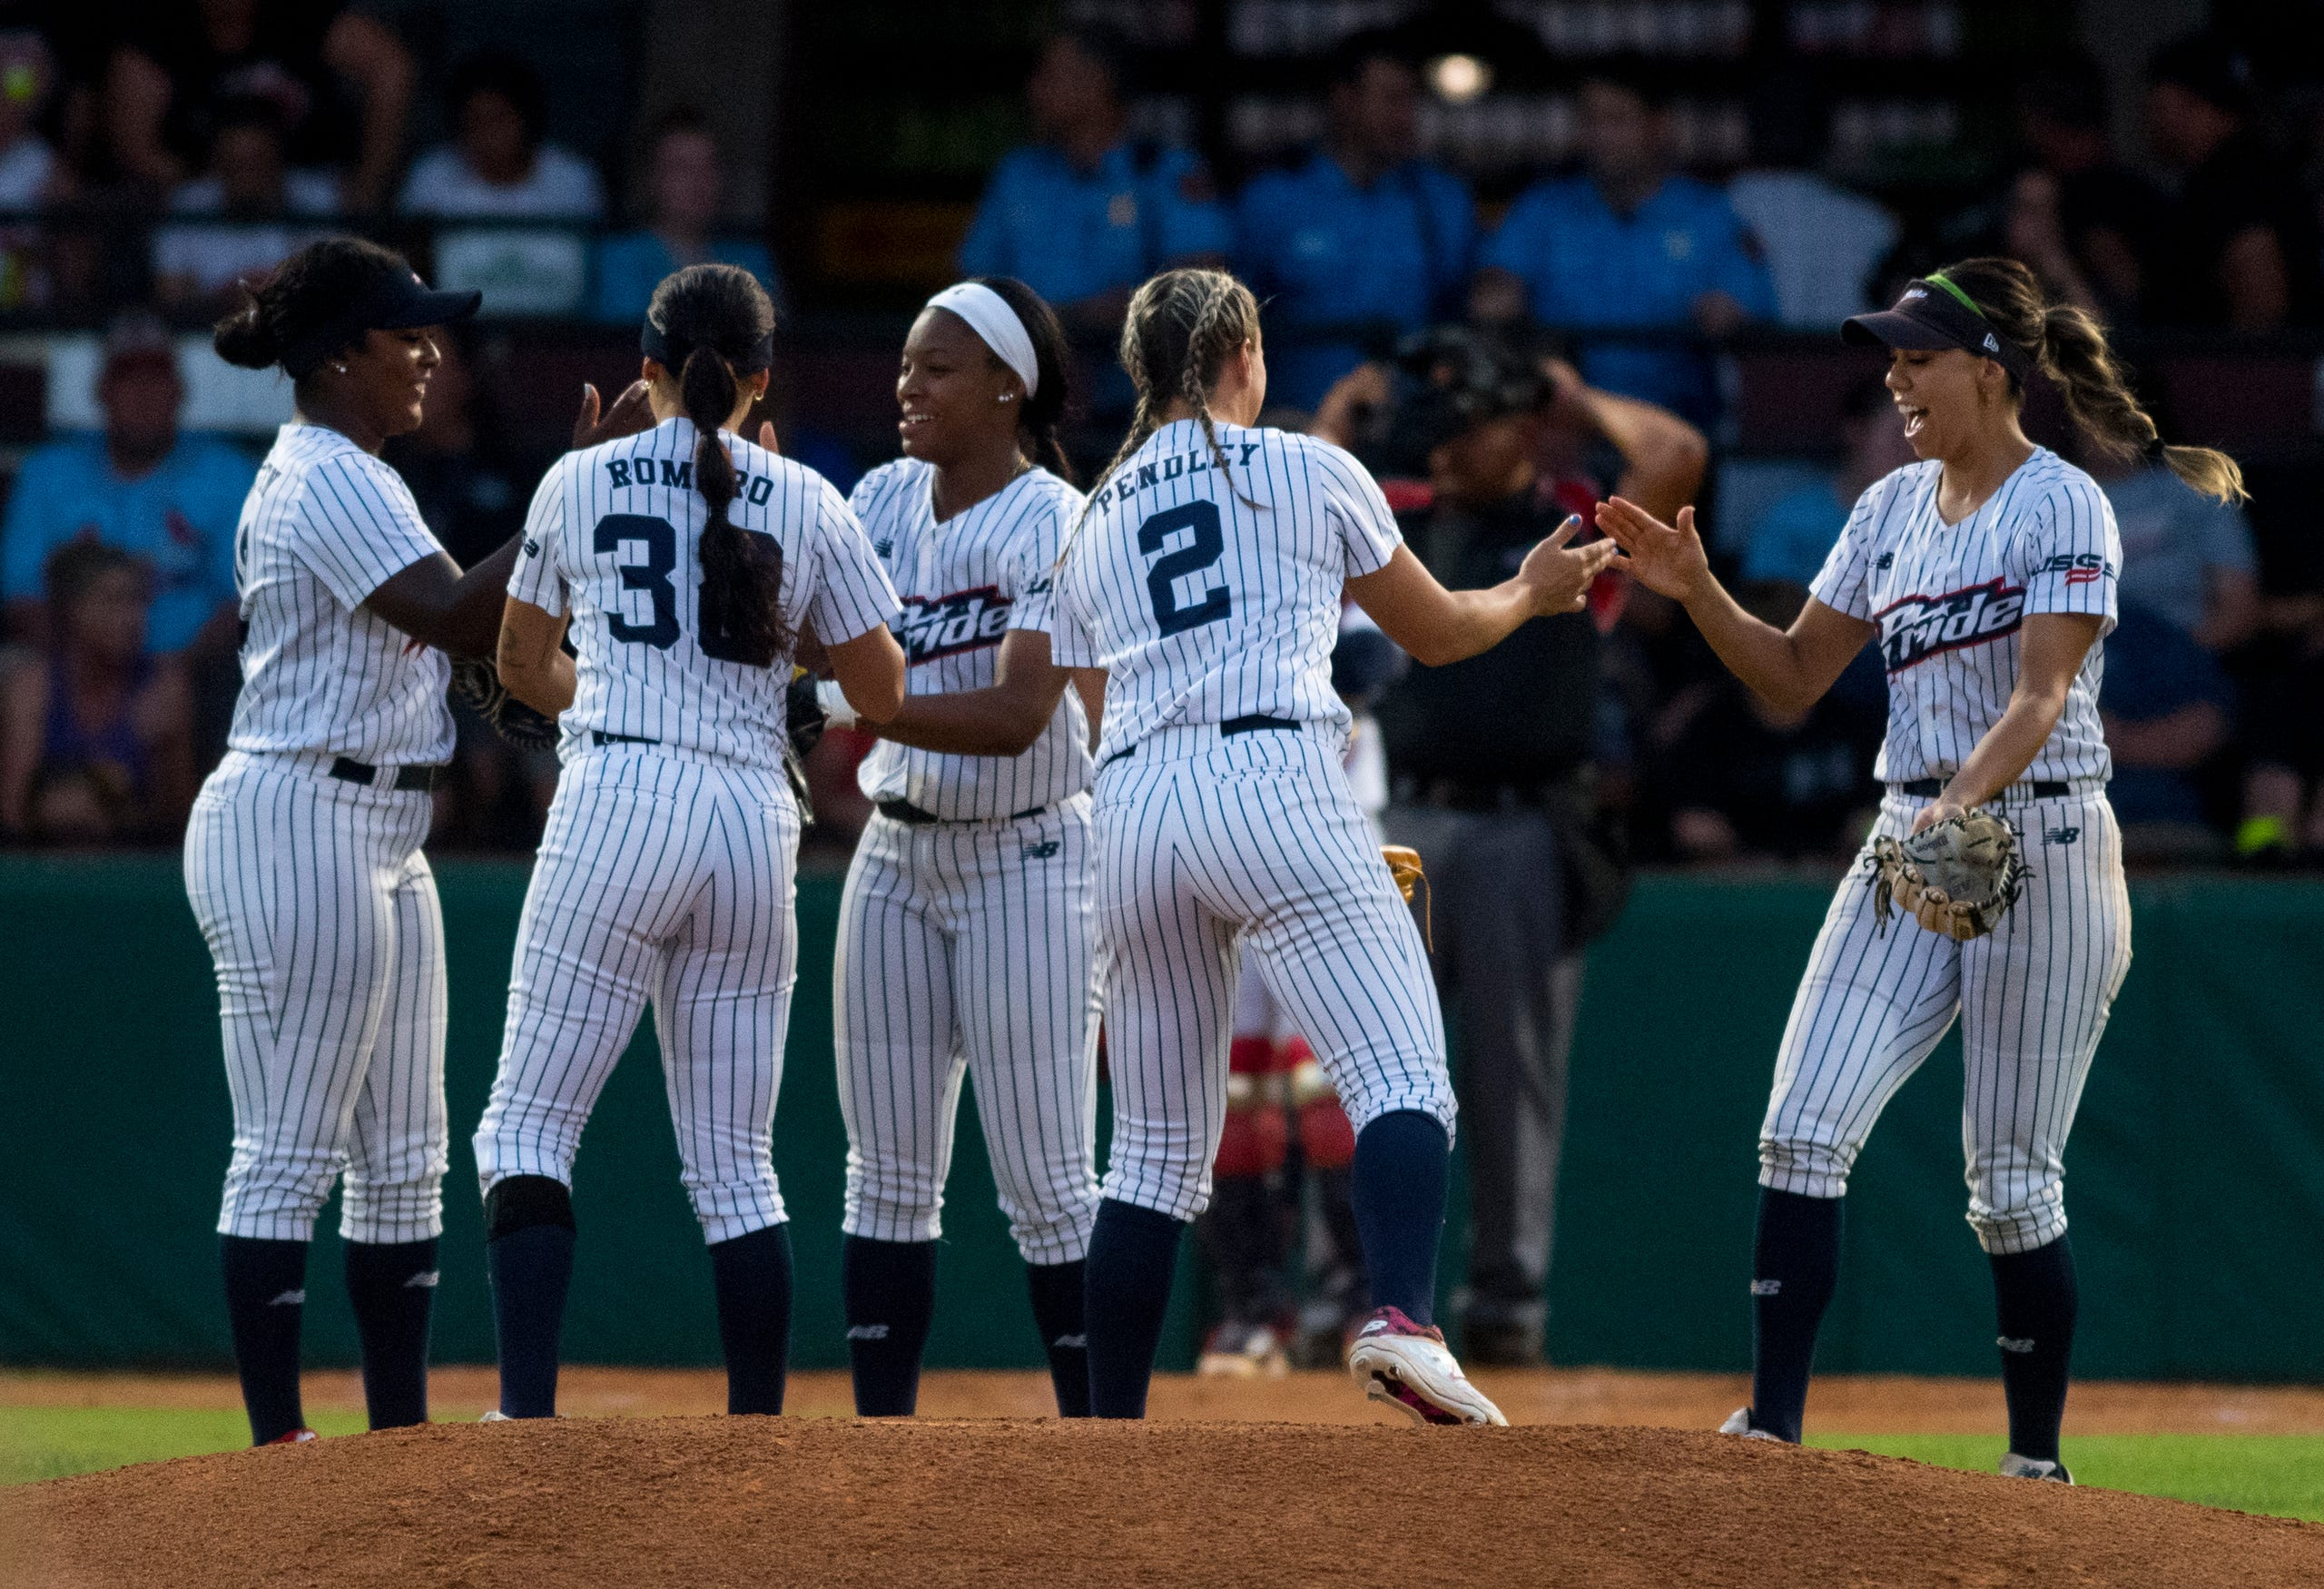 USSSA Pride gather at the mound in the third inning during their exhibition game against Team Florida at Bosse Field in Evansville, Ind., Wednesday evening, July 14, 2021.